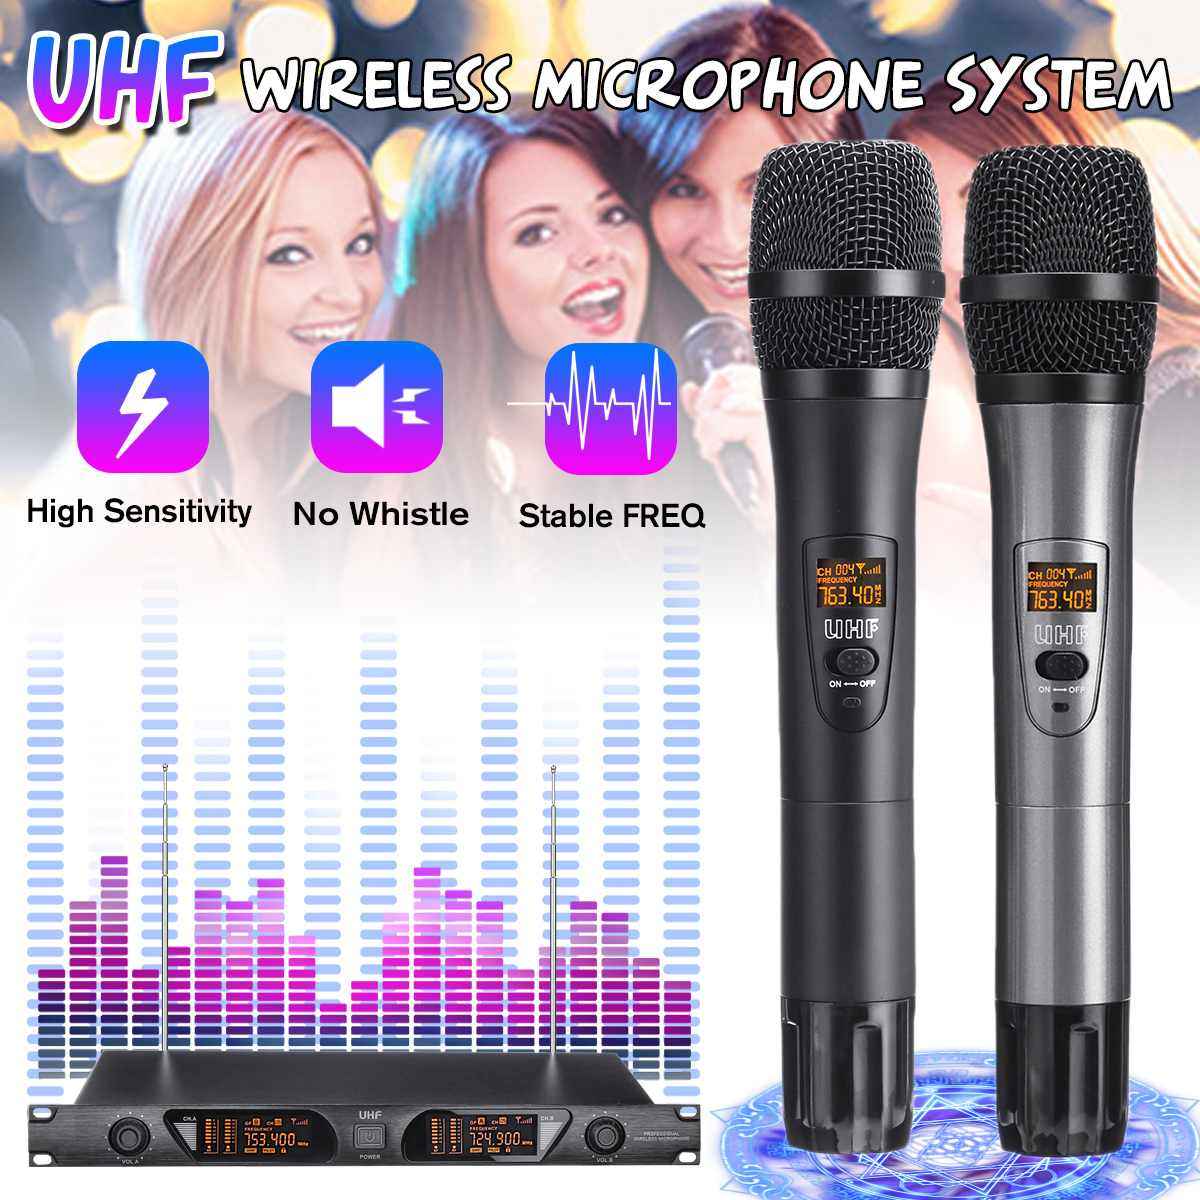 Professional UHF Digital Wireless Microphone with 2 Metal Handhelds Two Channel Cordless System for Party Karaoke StageProfessional UHF Digital Wireless Microphone with 2 Metal Handhelds Two Channel Cordless System for Party Karaoke Stage